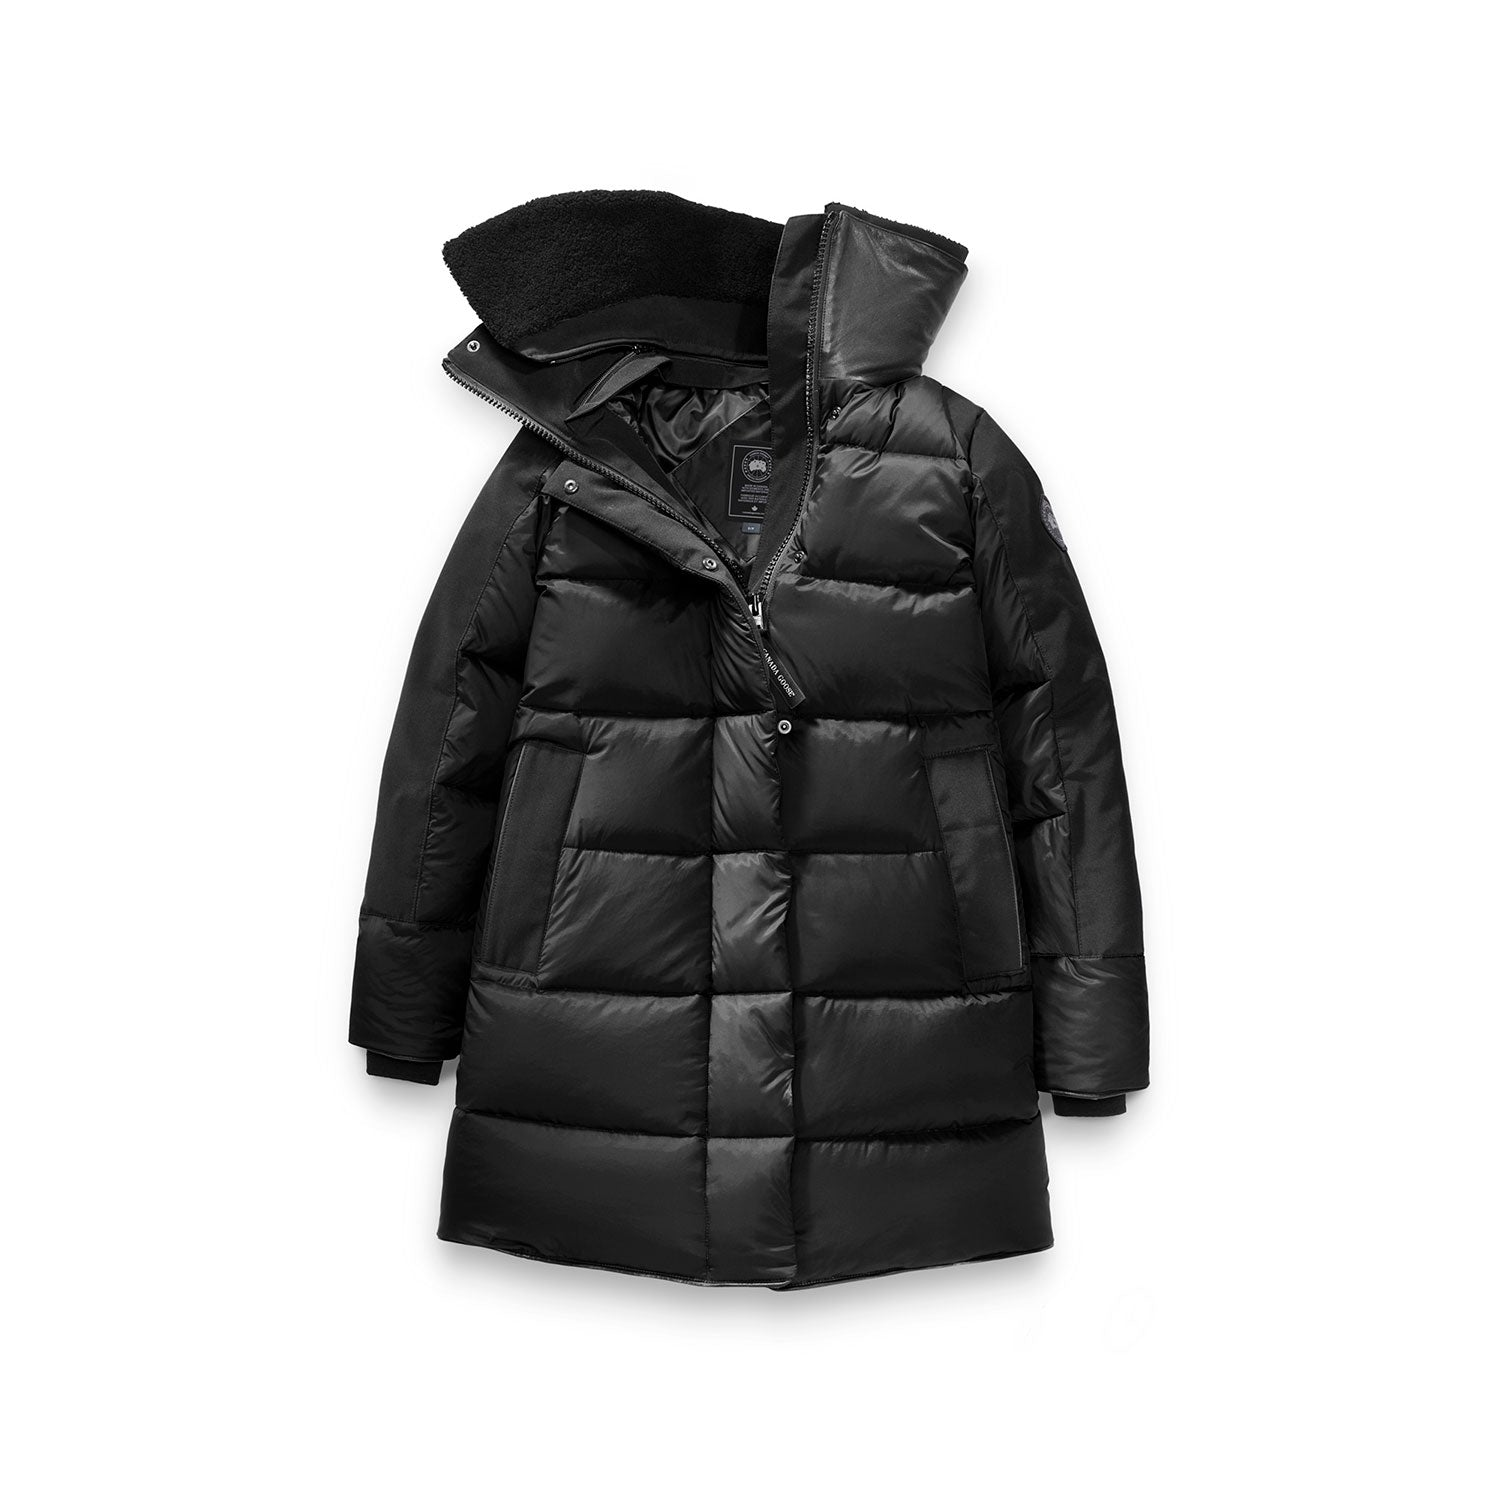 Shop now · Women's Altona Parka Black Label|-|Parka Altona Black Label Femme Canada Goose